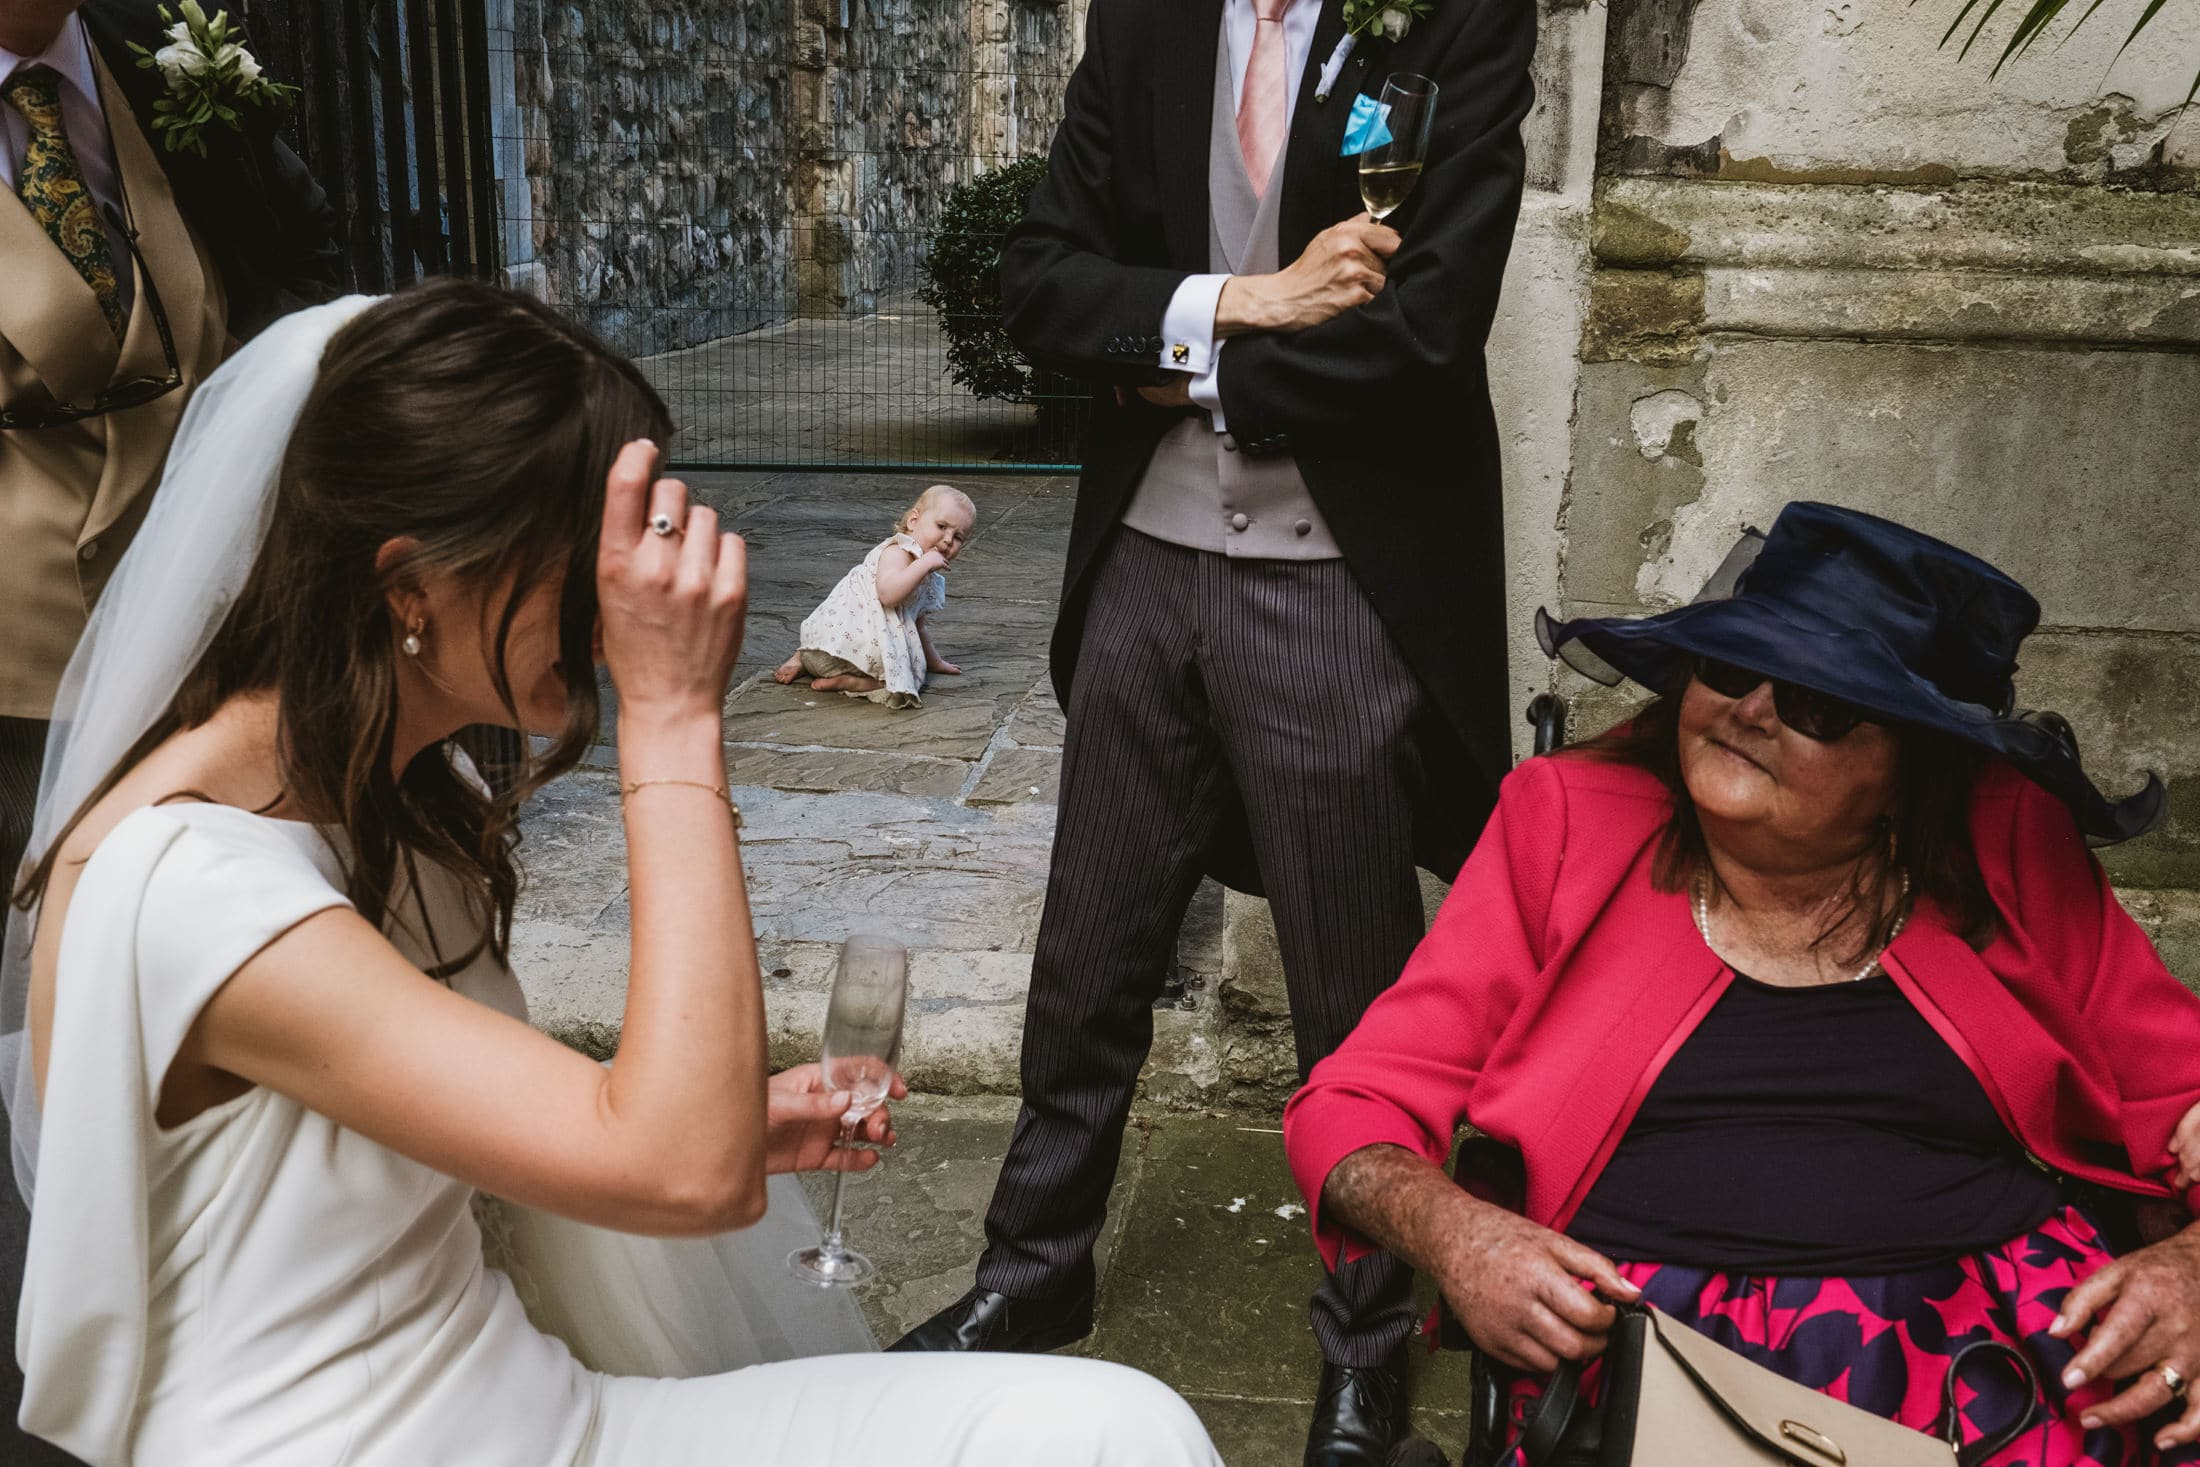 London street wedding photography scene. A little girl in the background, creeping towards the exit, is framed between the bride, groom and guests. Only the little girl's face is fully visible as she looks back towards the camera